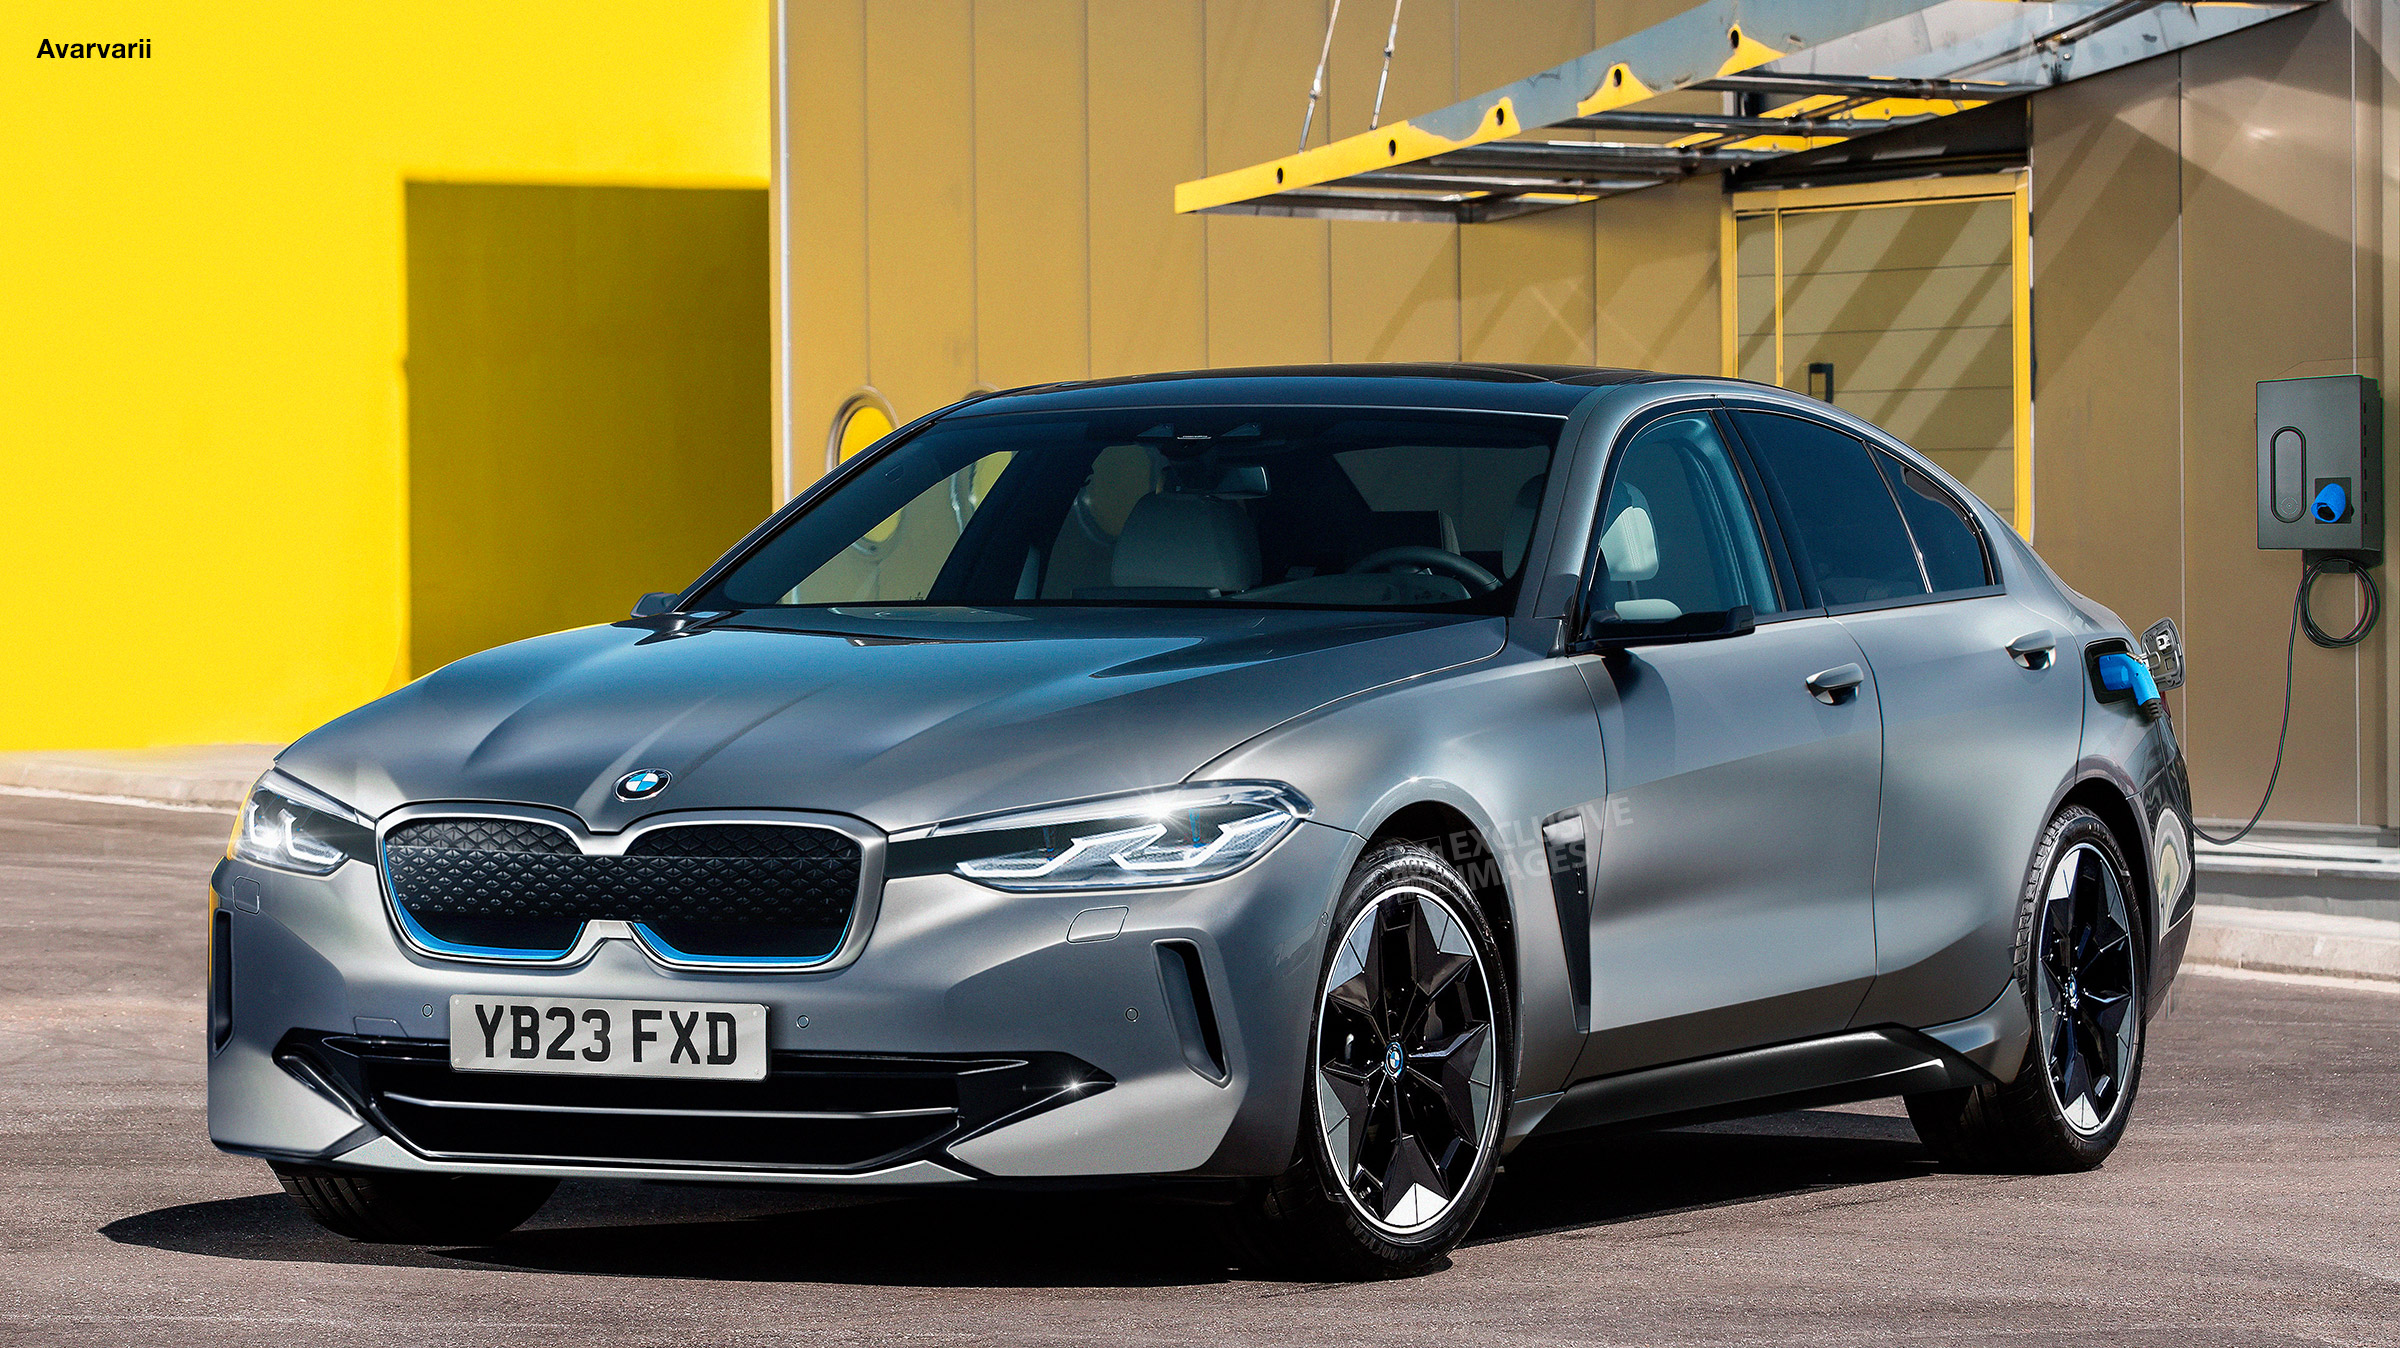 New 5 BMW 5 Series to feature all-electric i5 model  Auto Express